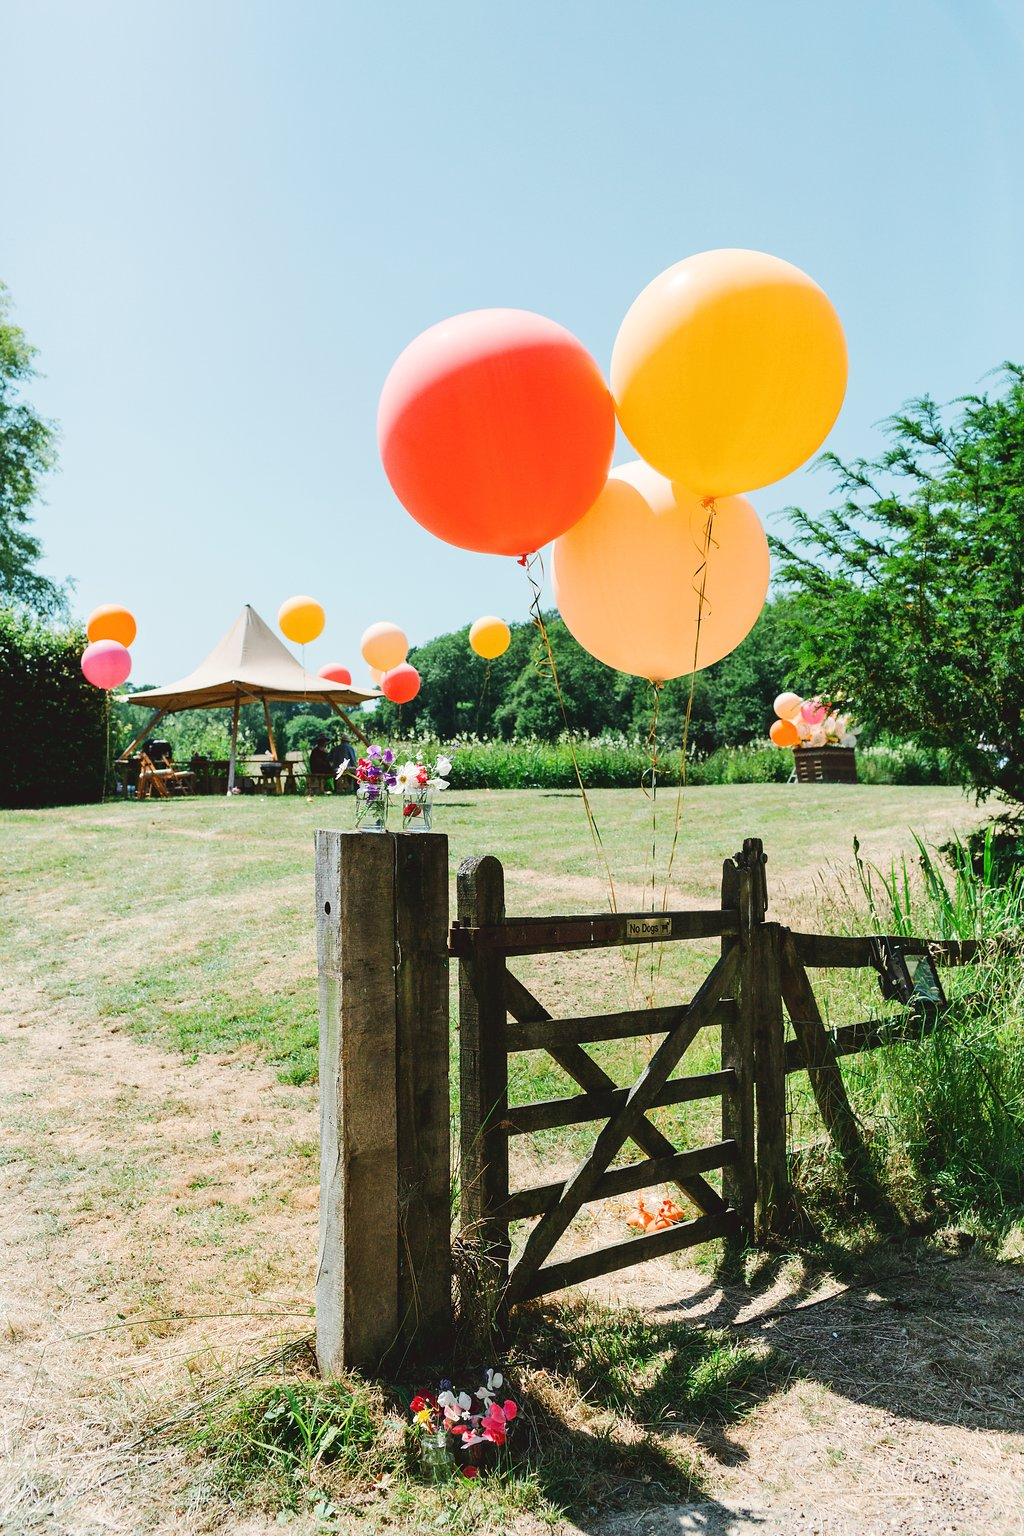 Tipi-wedding-yurt-wedding-marquee-wedding-sussex-wedding-planner-on-the-day-coordinator-balloons